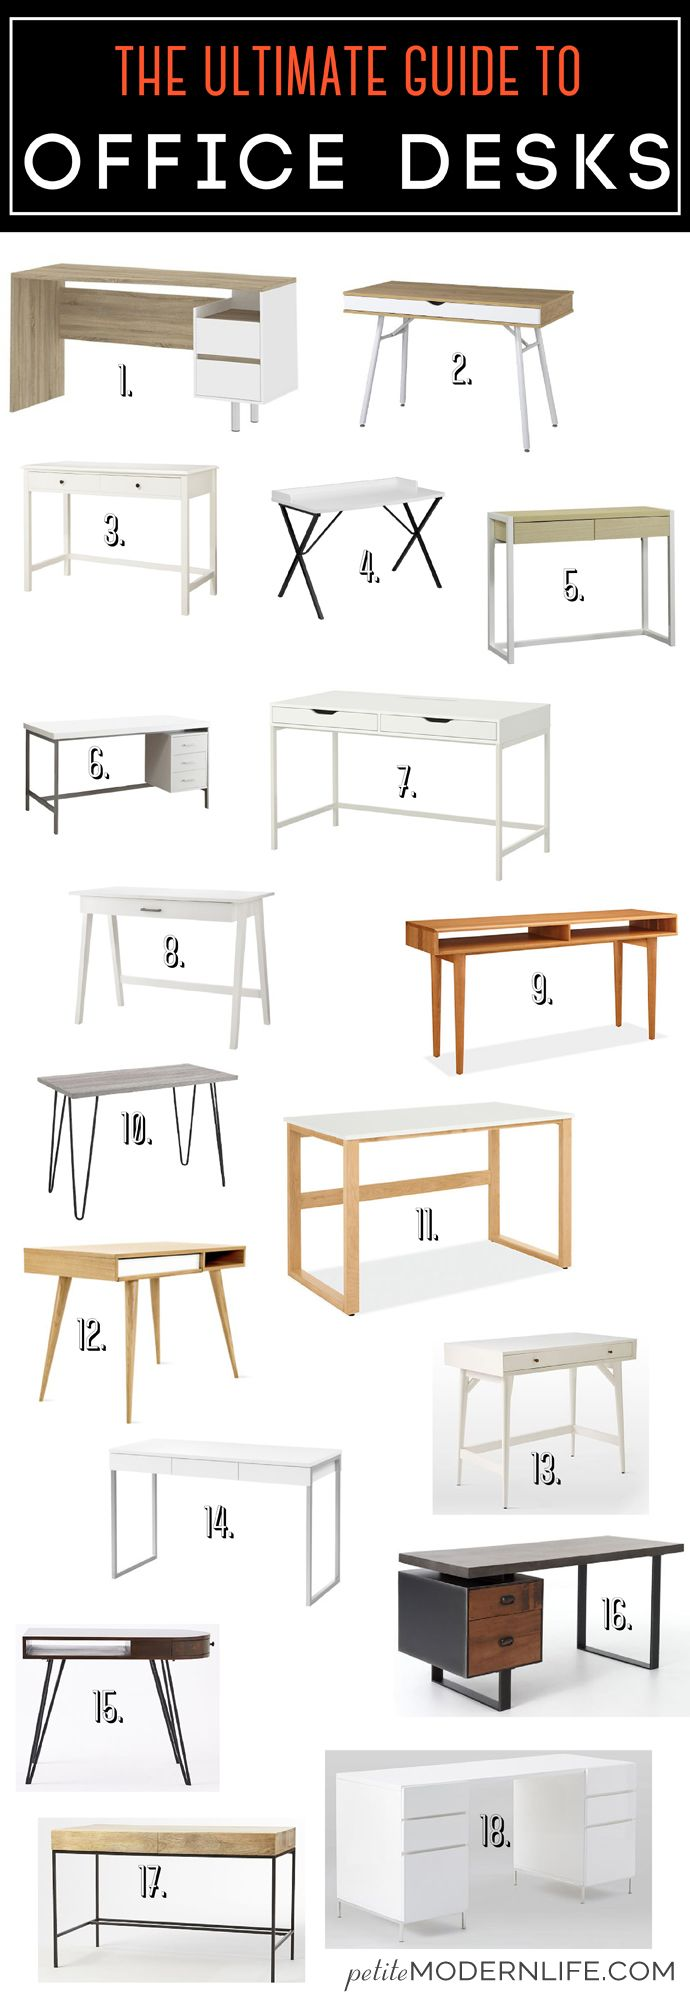 lovely long desks home office 5. the ultimate guide for modern office desks on petite life 18 styles 5 lovely long home i